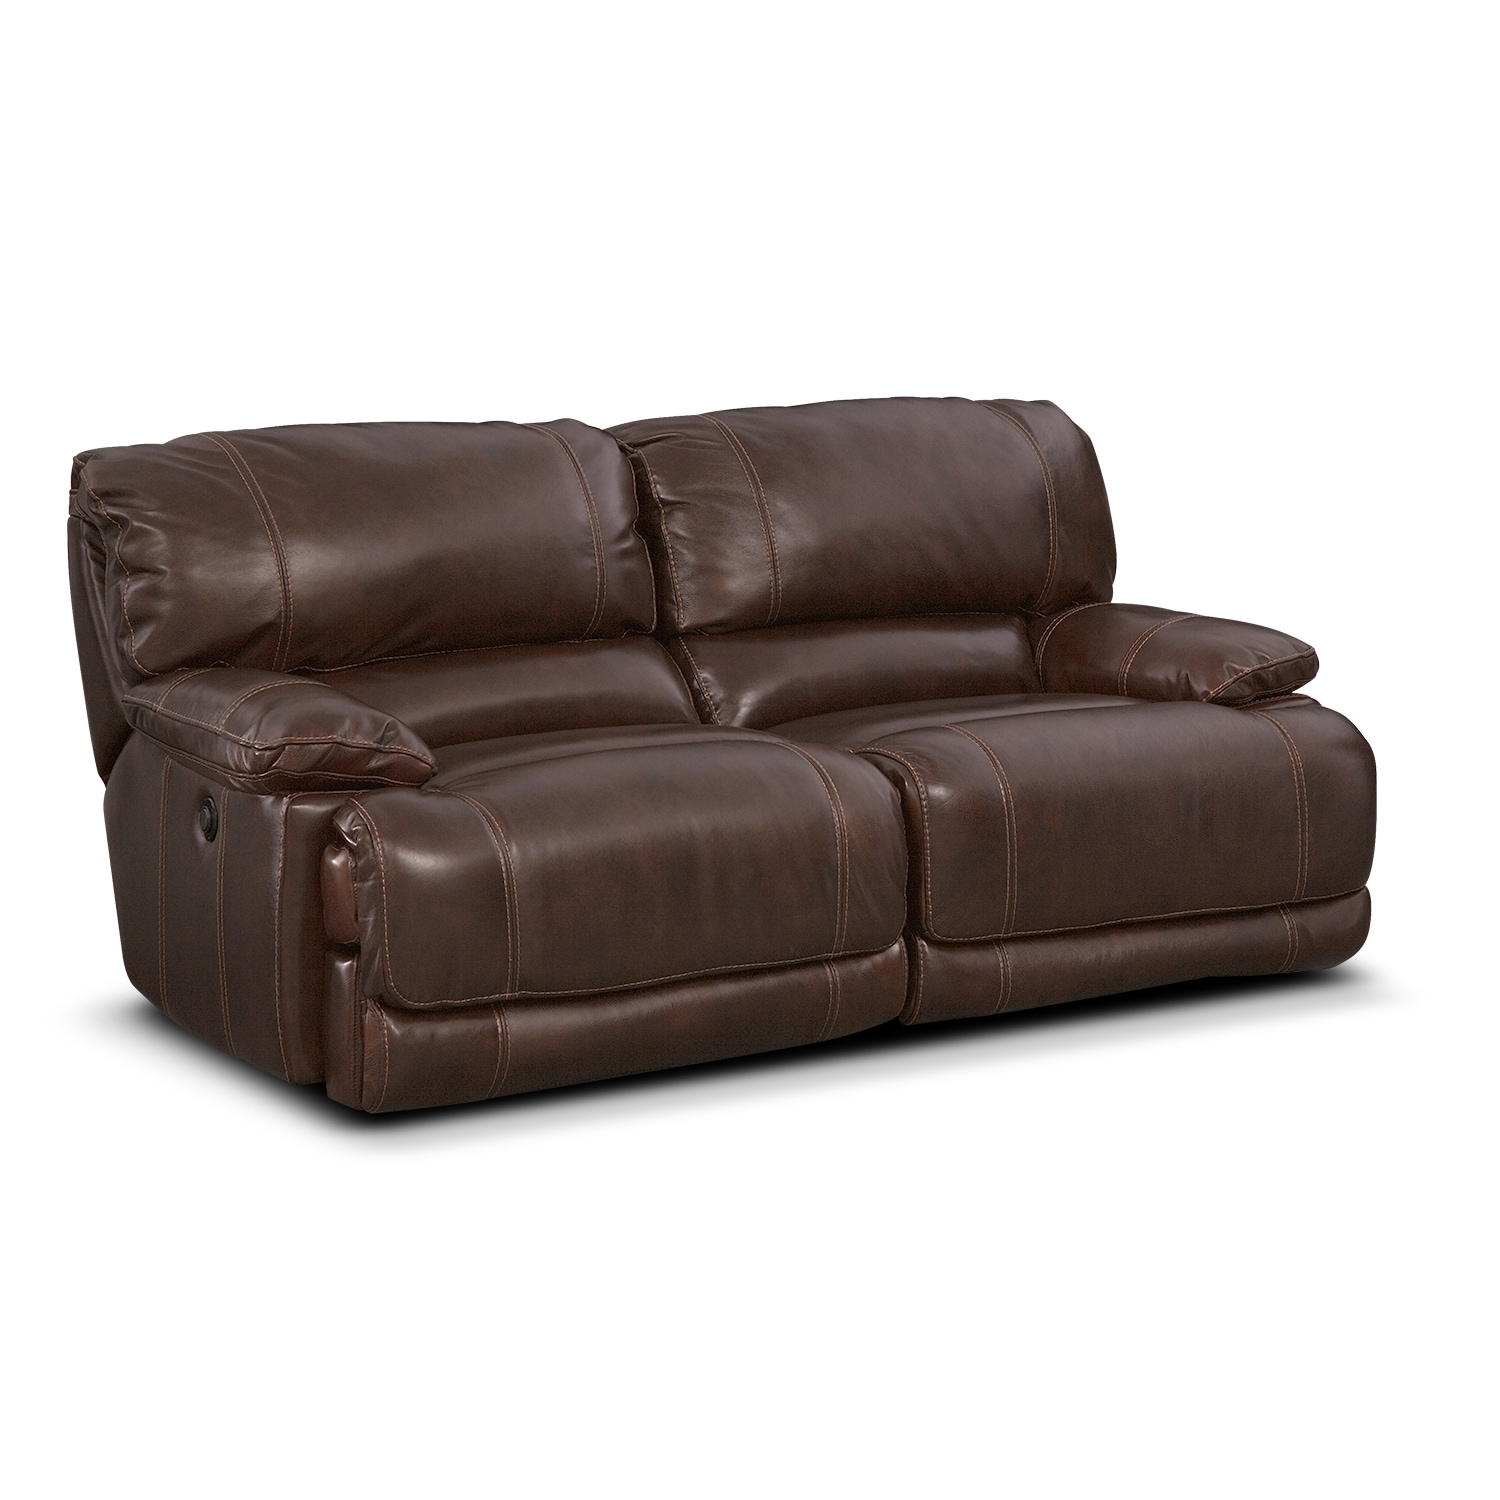 Living Room Furniture - St. Malo 2 Pc. Power Reclining Sofa